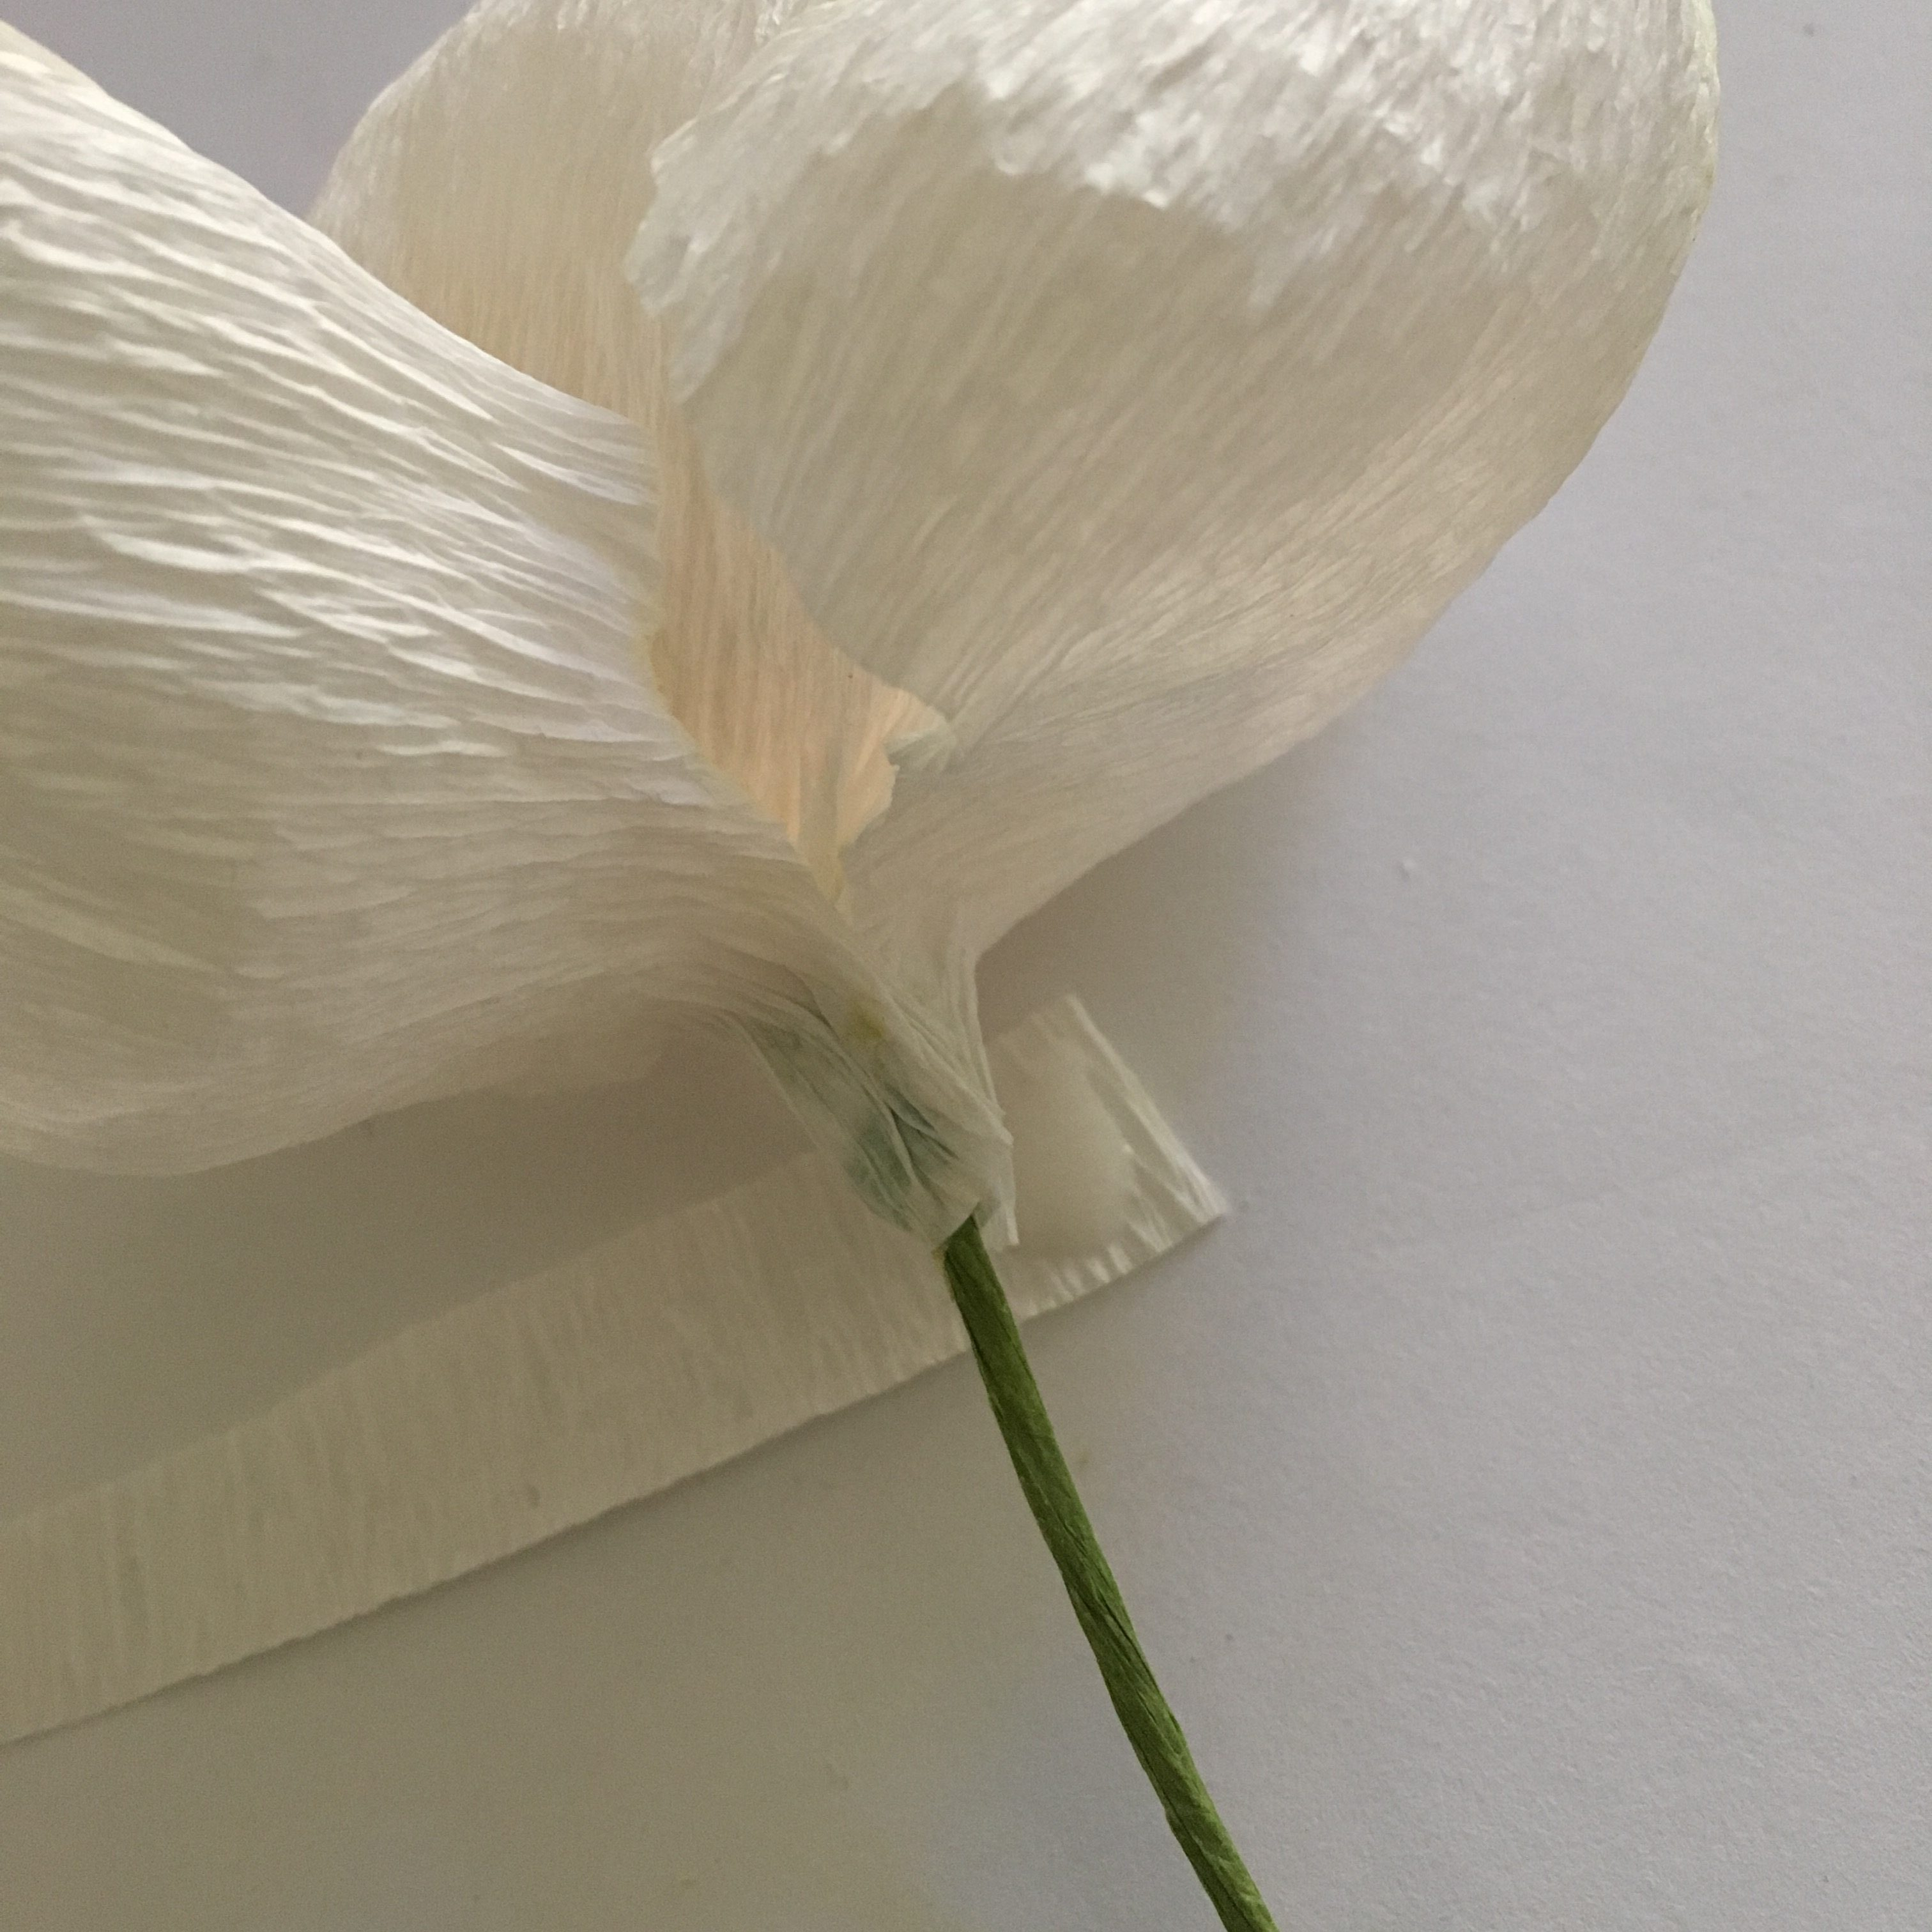 Iceland poppy flower -fixing the stem